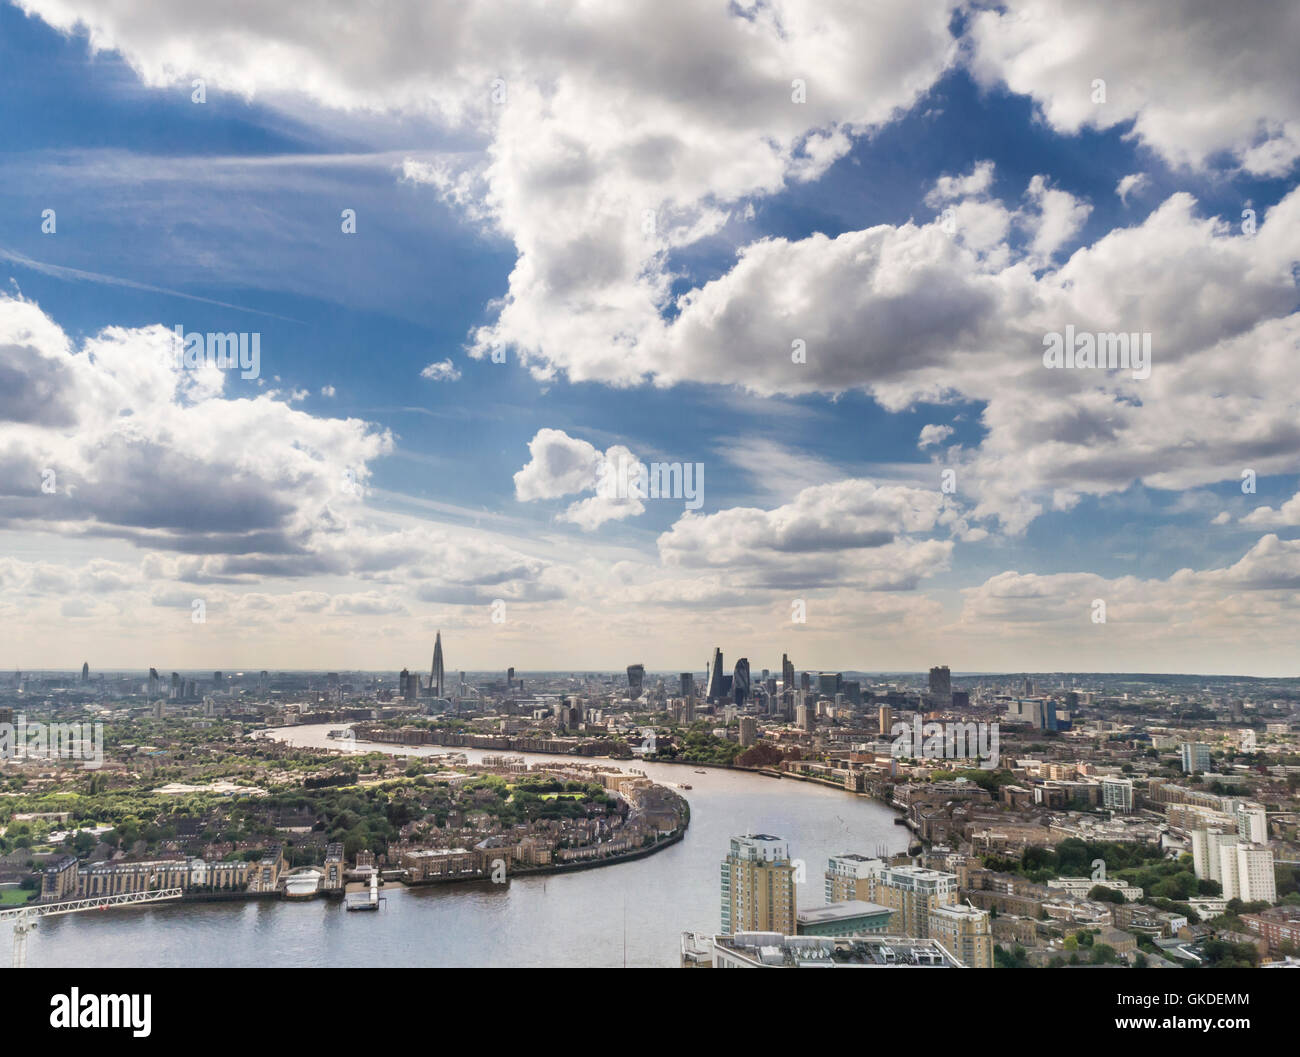 Skyline of London's traditional financial district City of London with the river Thames in the foreground. - Stock Image